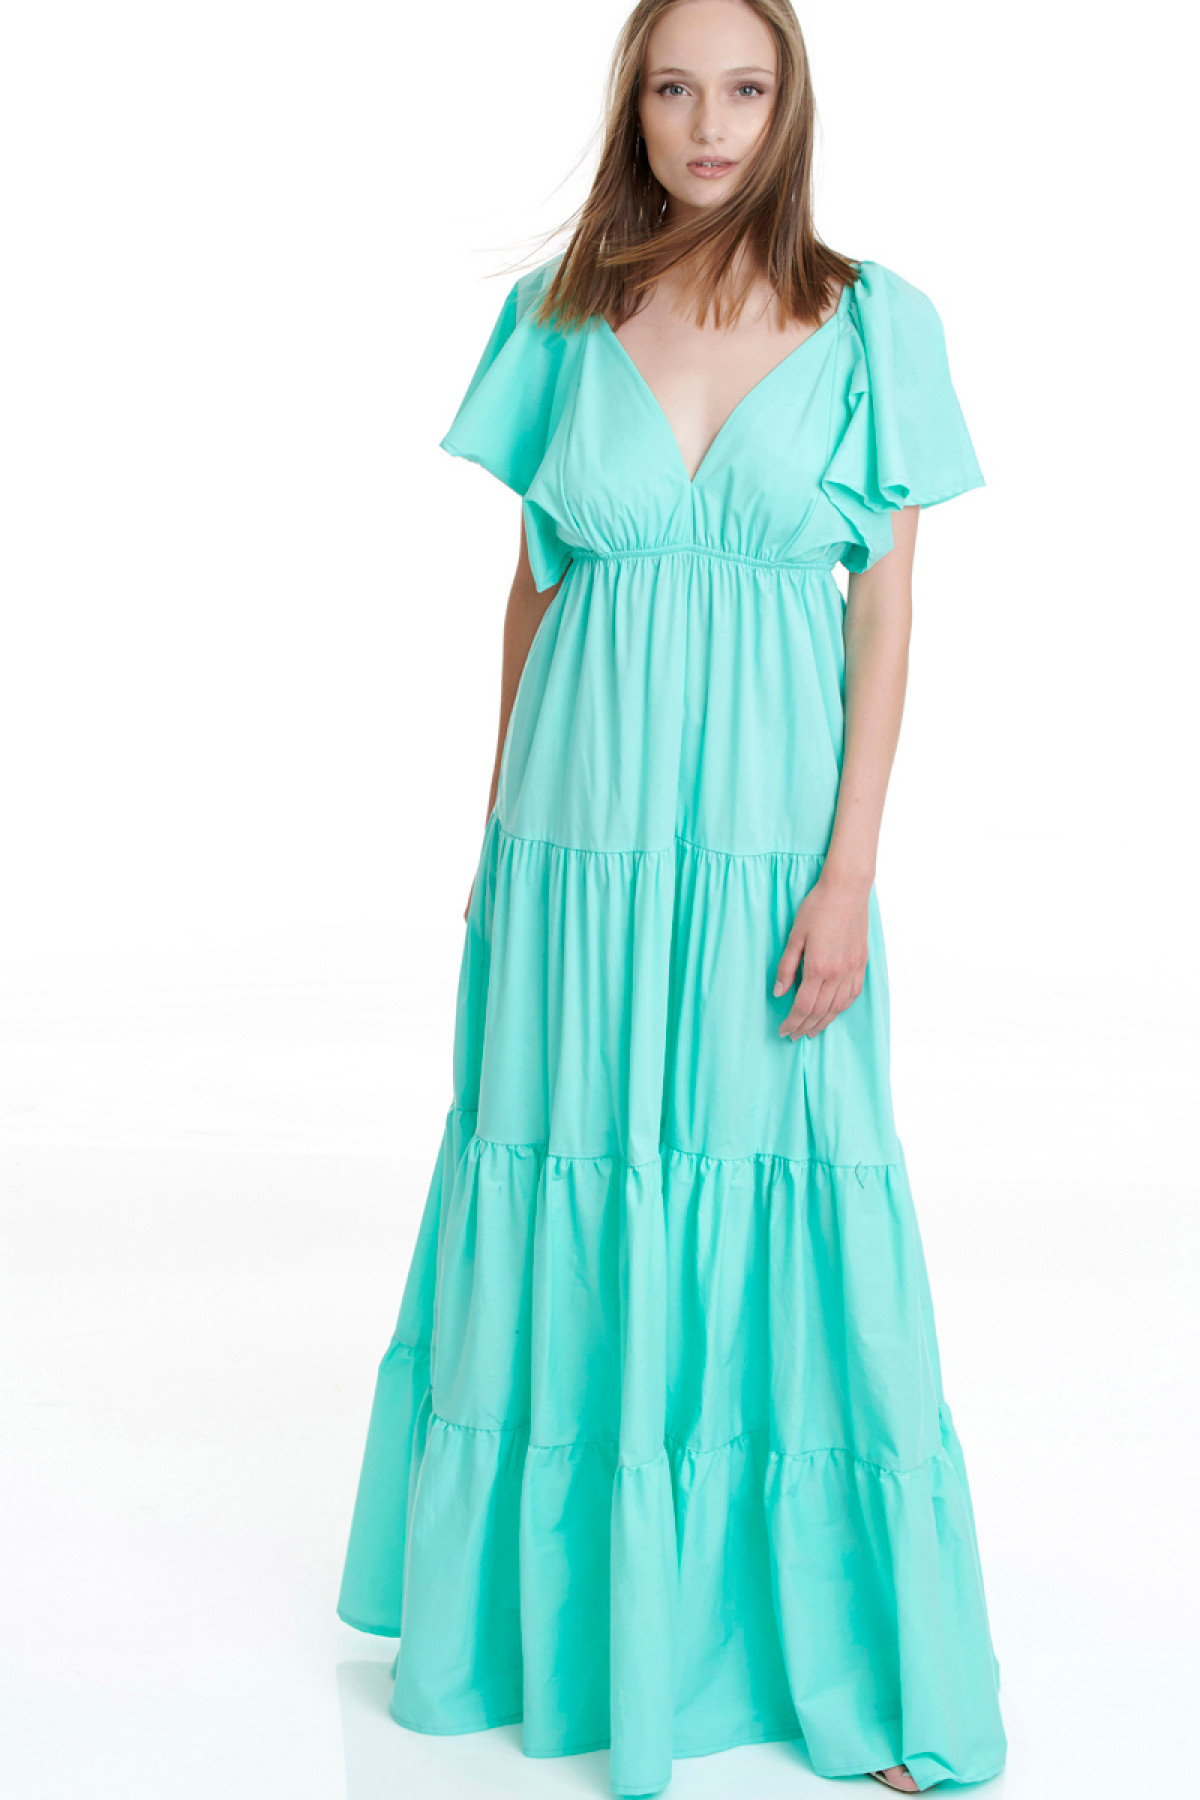 TURQUOISE LONG POPLIN DRESS